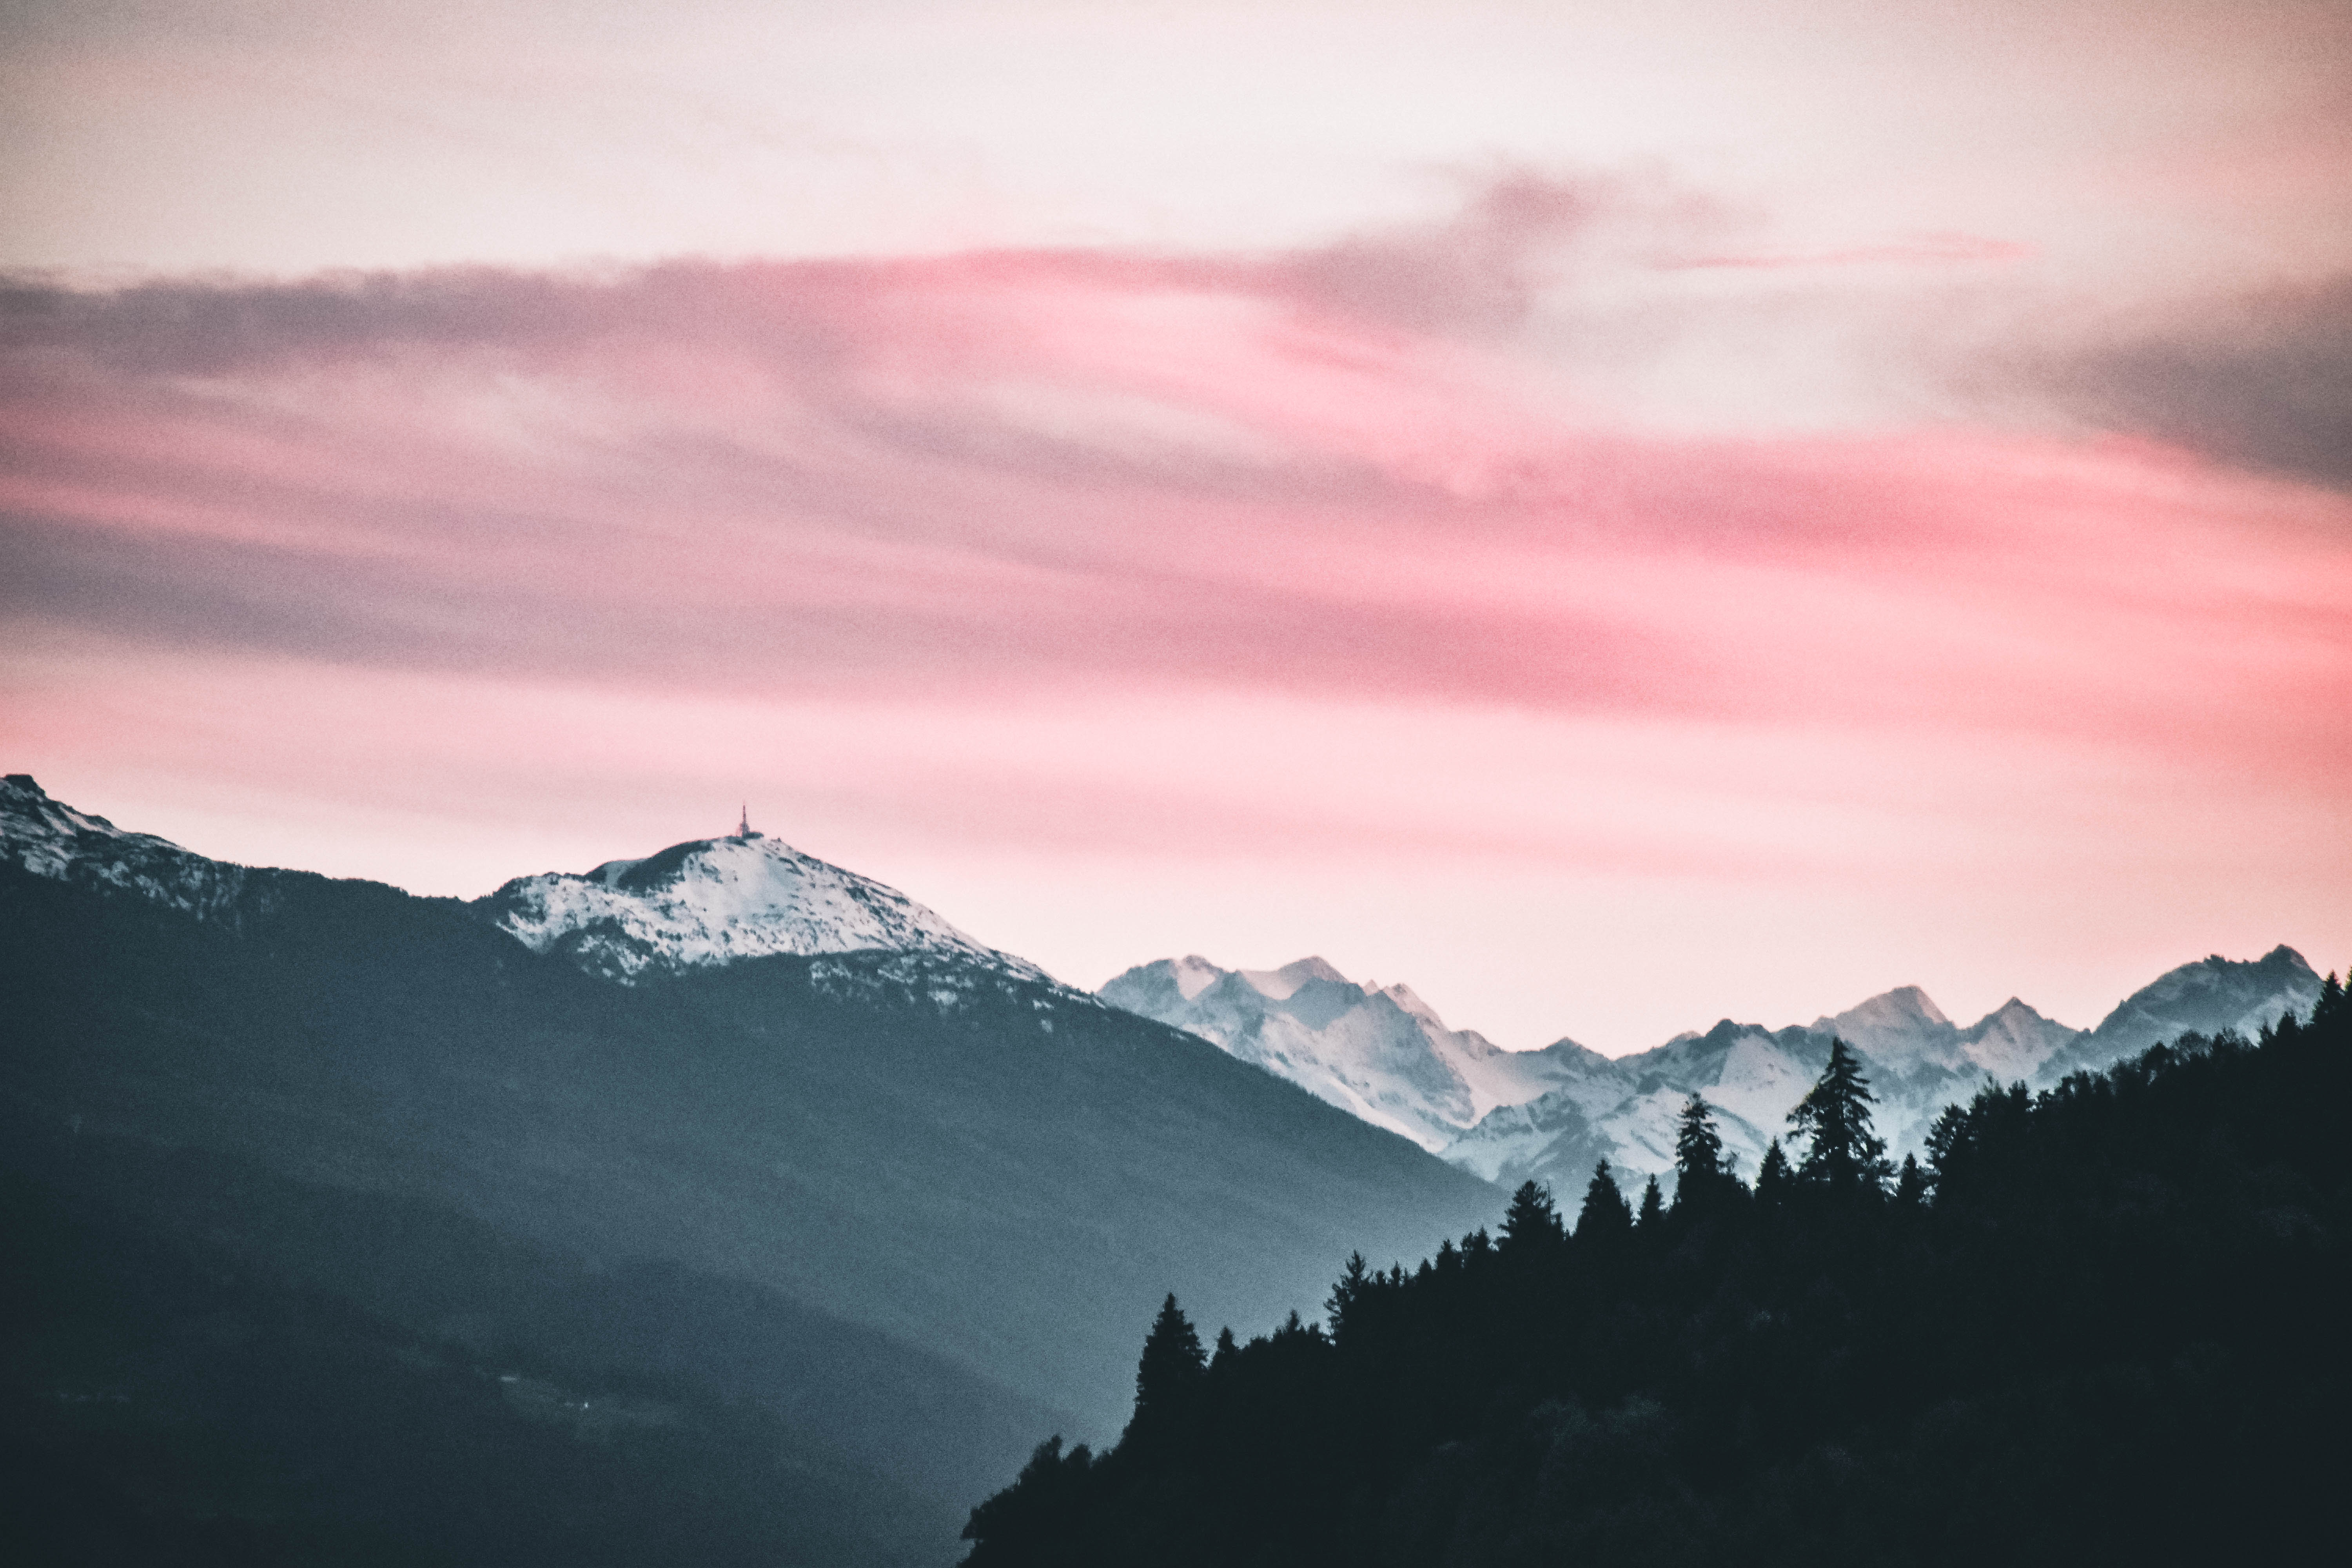 Desktop Wallpaper      Pexels      Free Stock Photos Snow Capped Mountains Under the Cloudy Skies